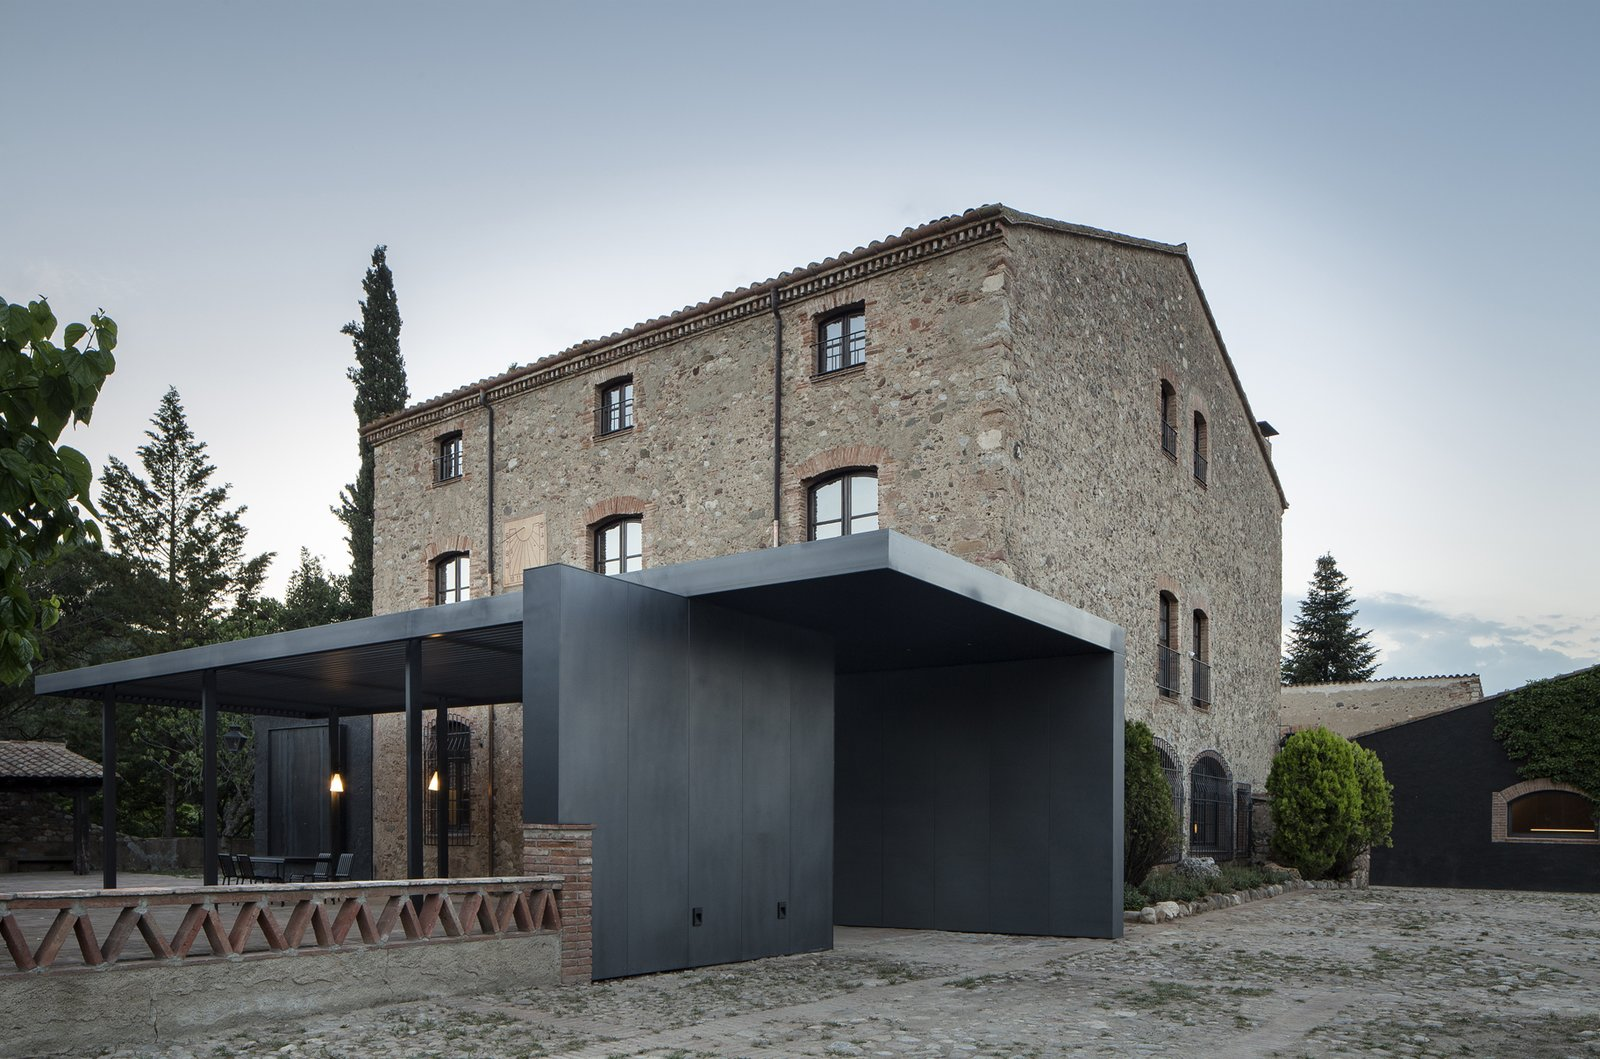 Exterior, Metal Siding Material, Shingles Roof Material, Farmhouse Building Type, and House Building Type  Sant Martí House by Francesc Rifé Studio